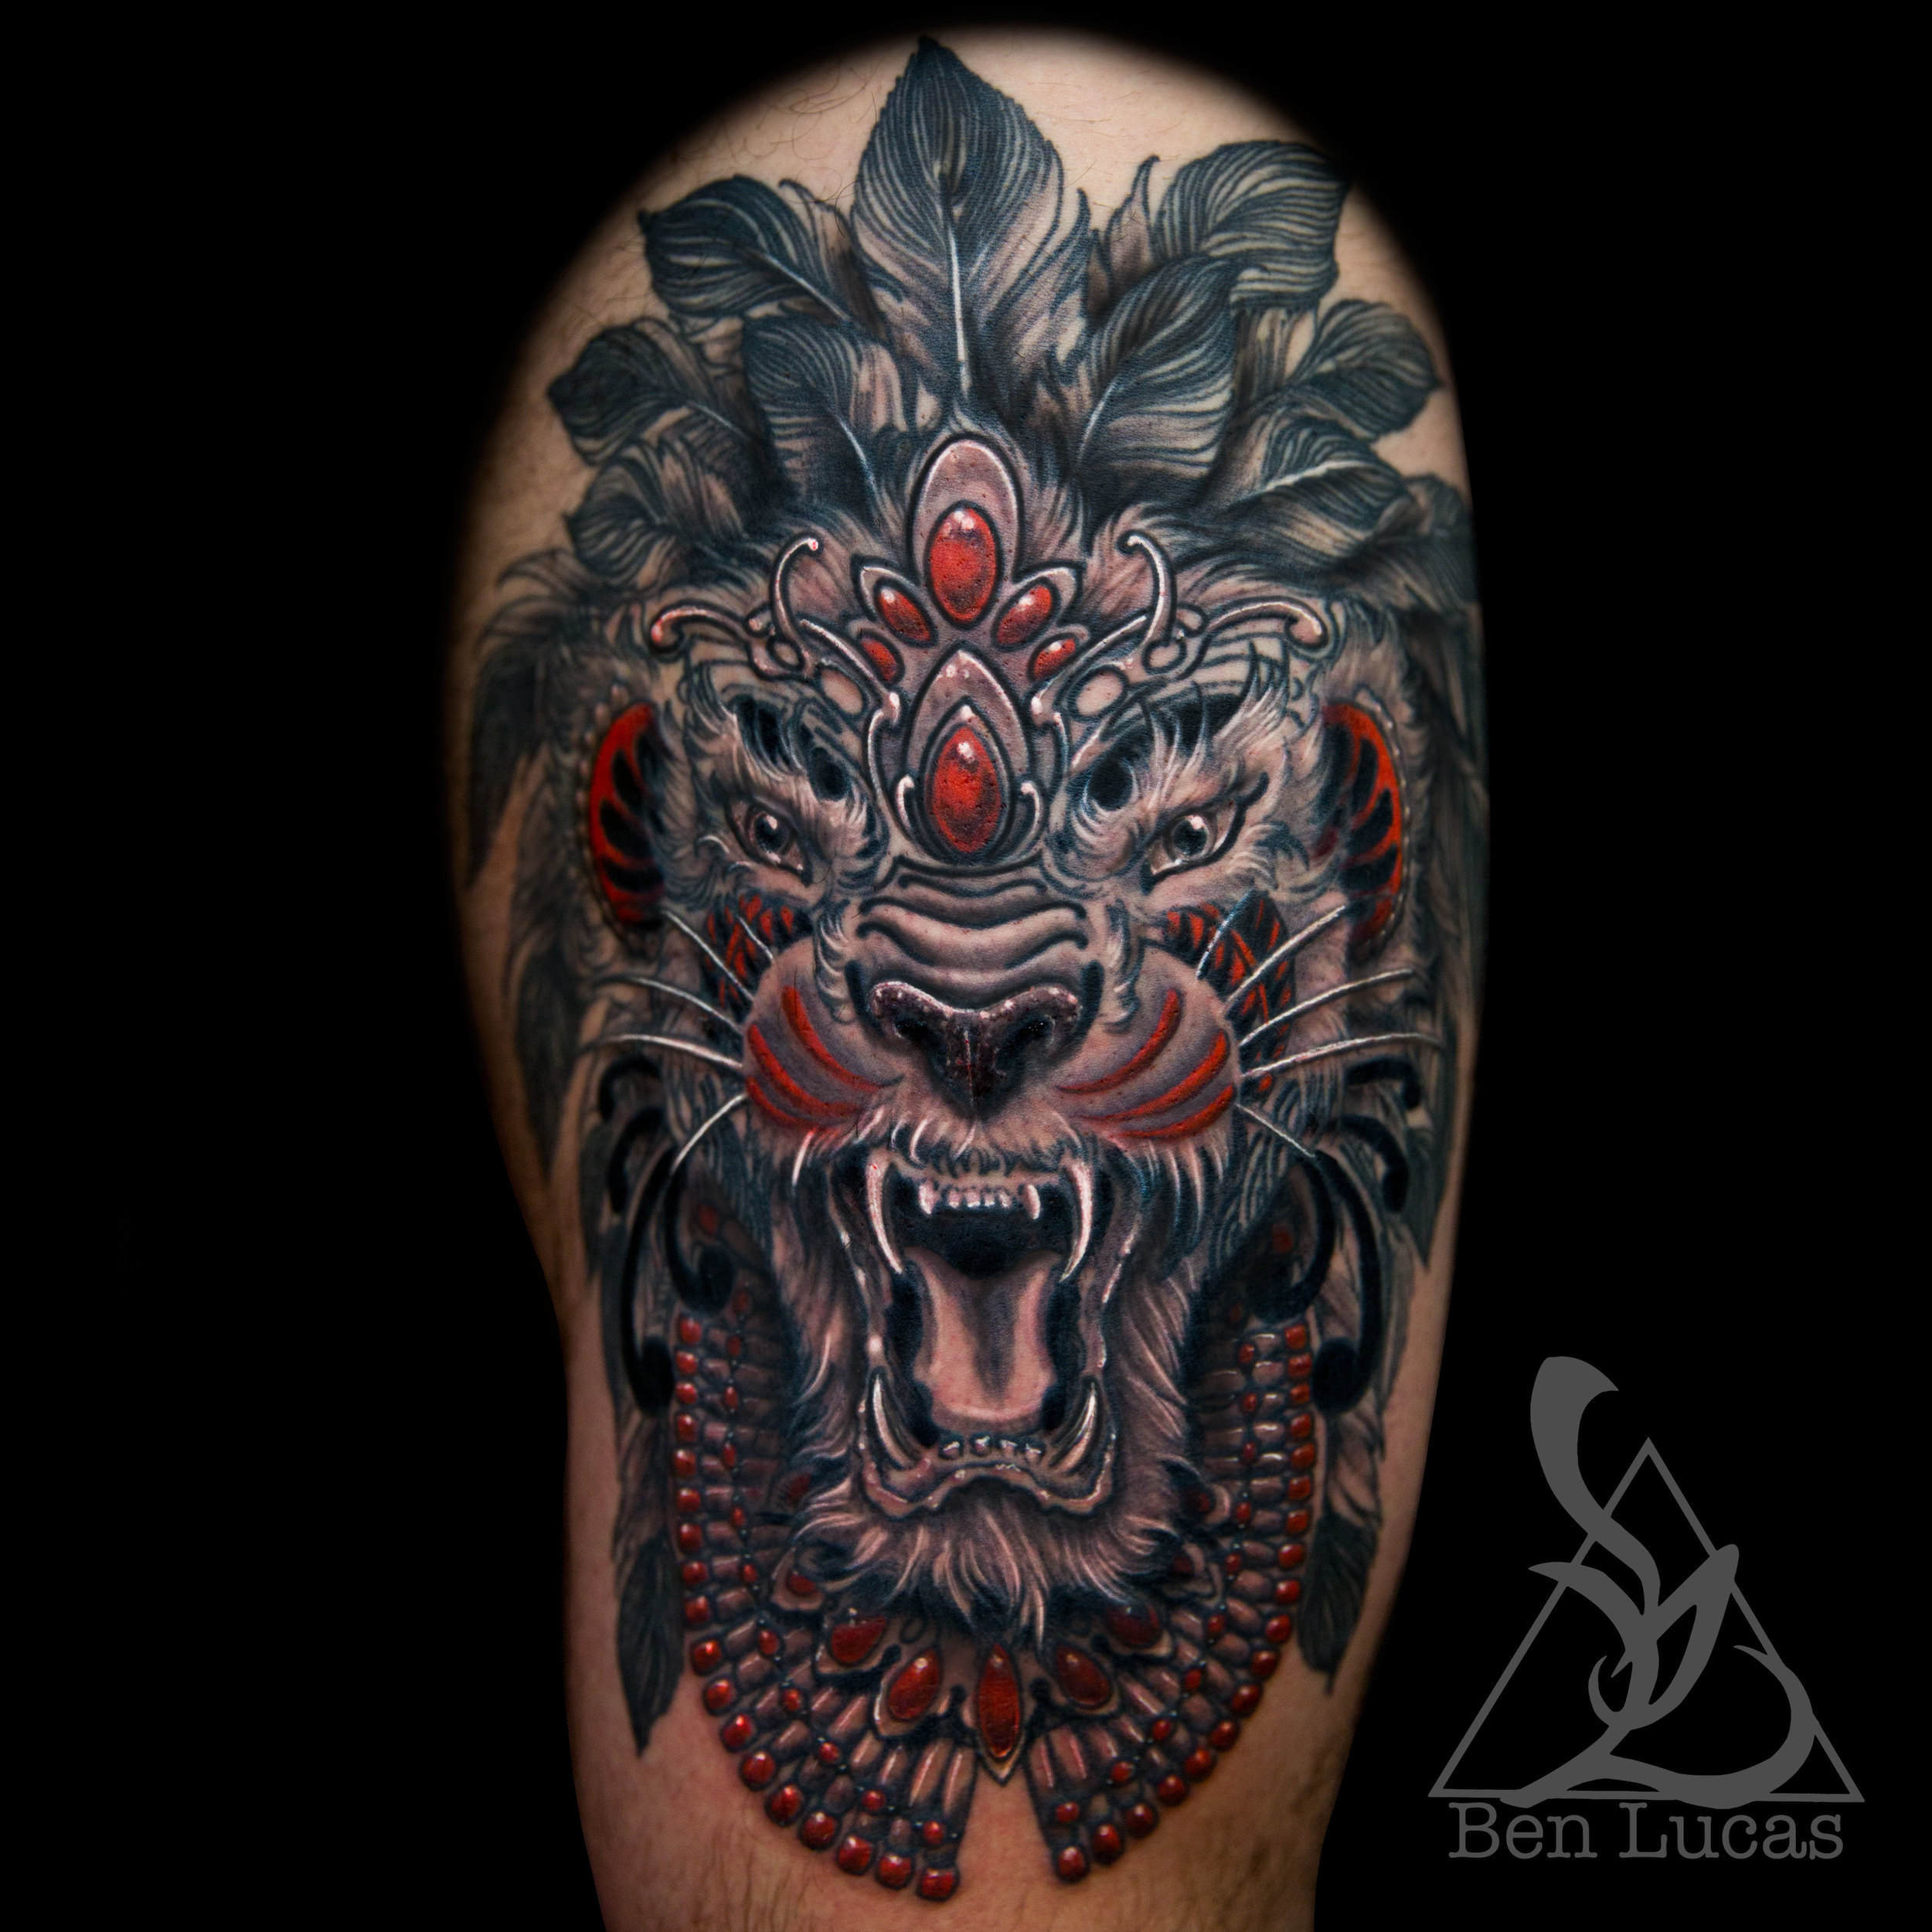 Erwin's  #tribal  #lion  #thightattoo that I finished up last week. It's so nice to be home a bit. Finally settling back in so I'll start posting again.